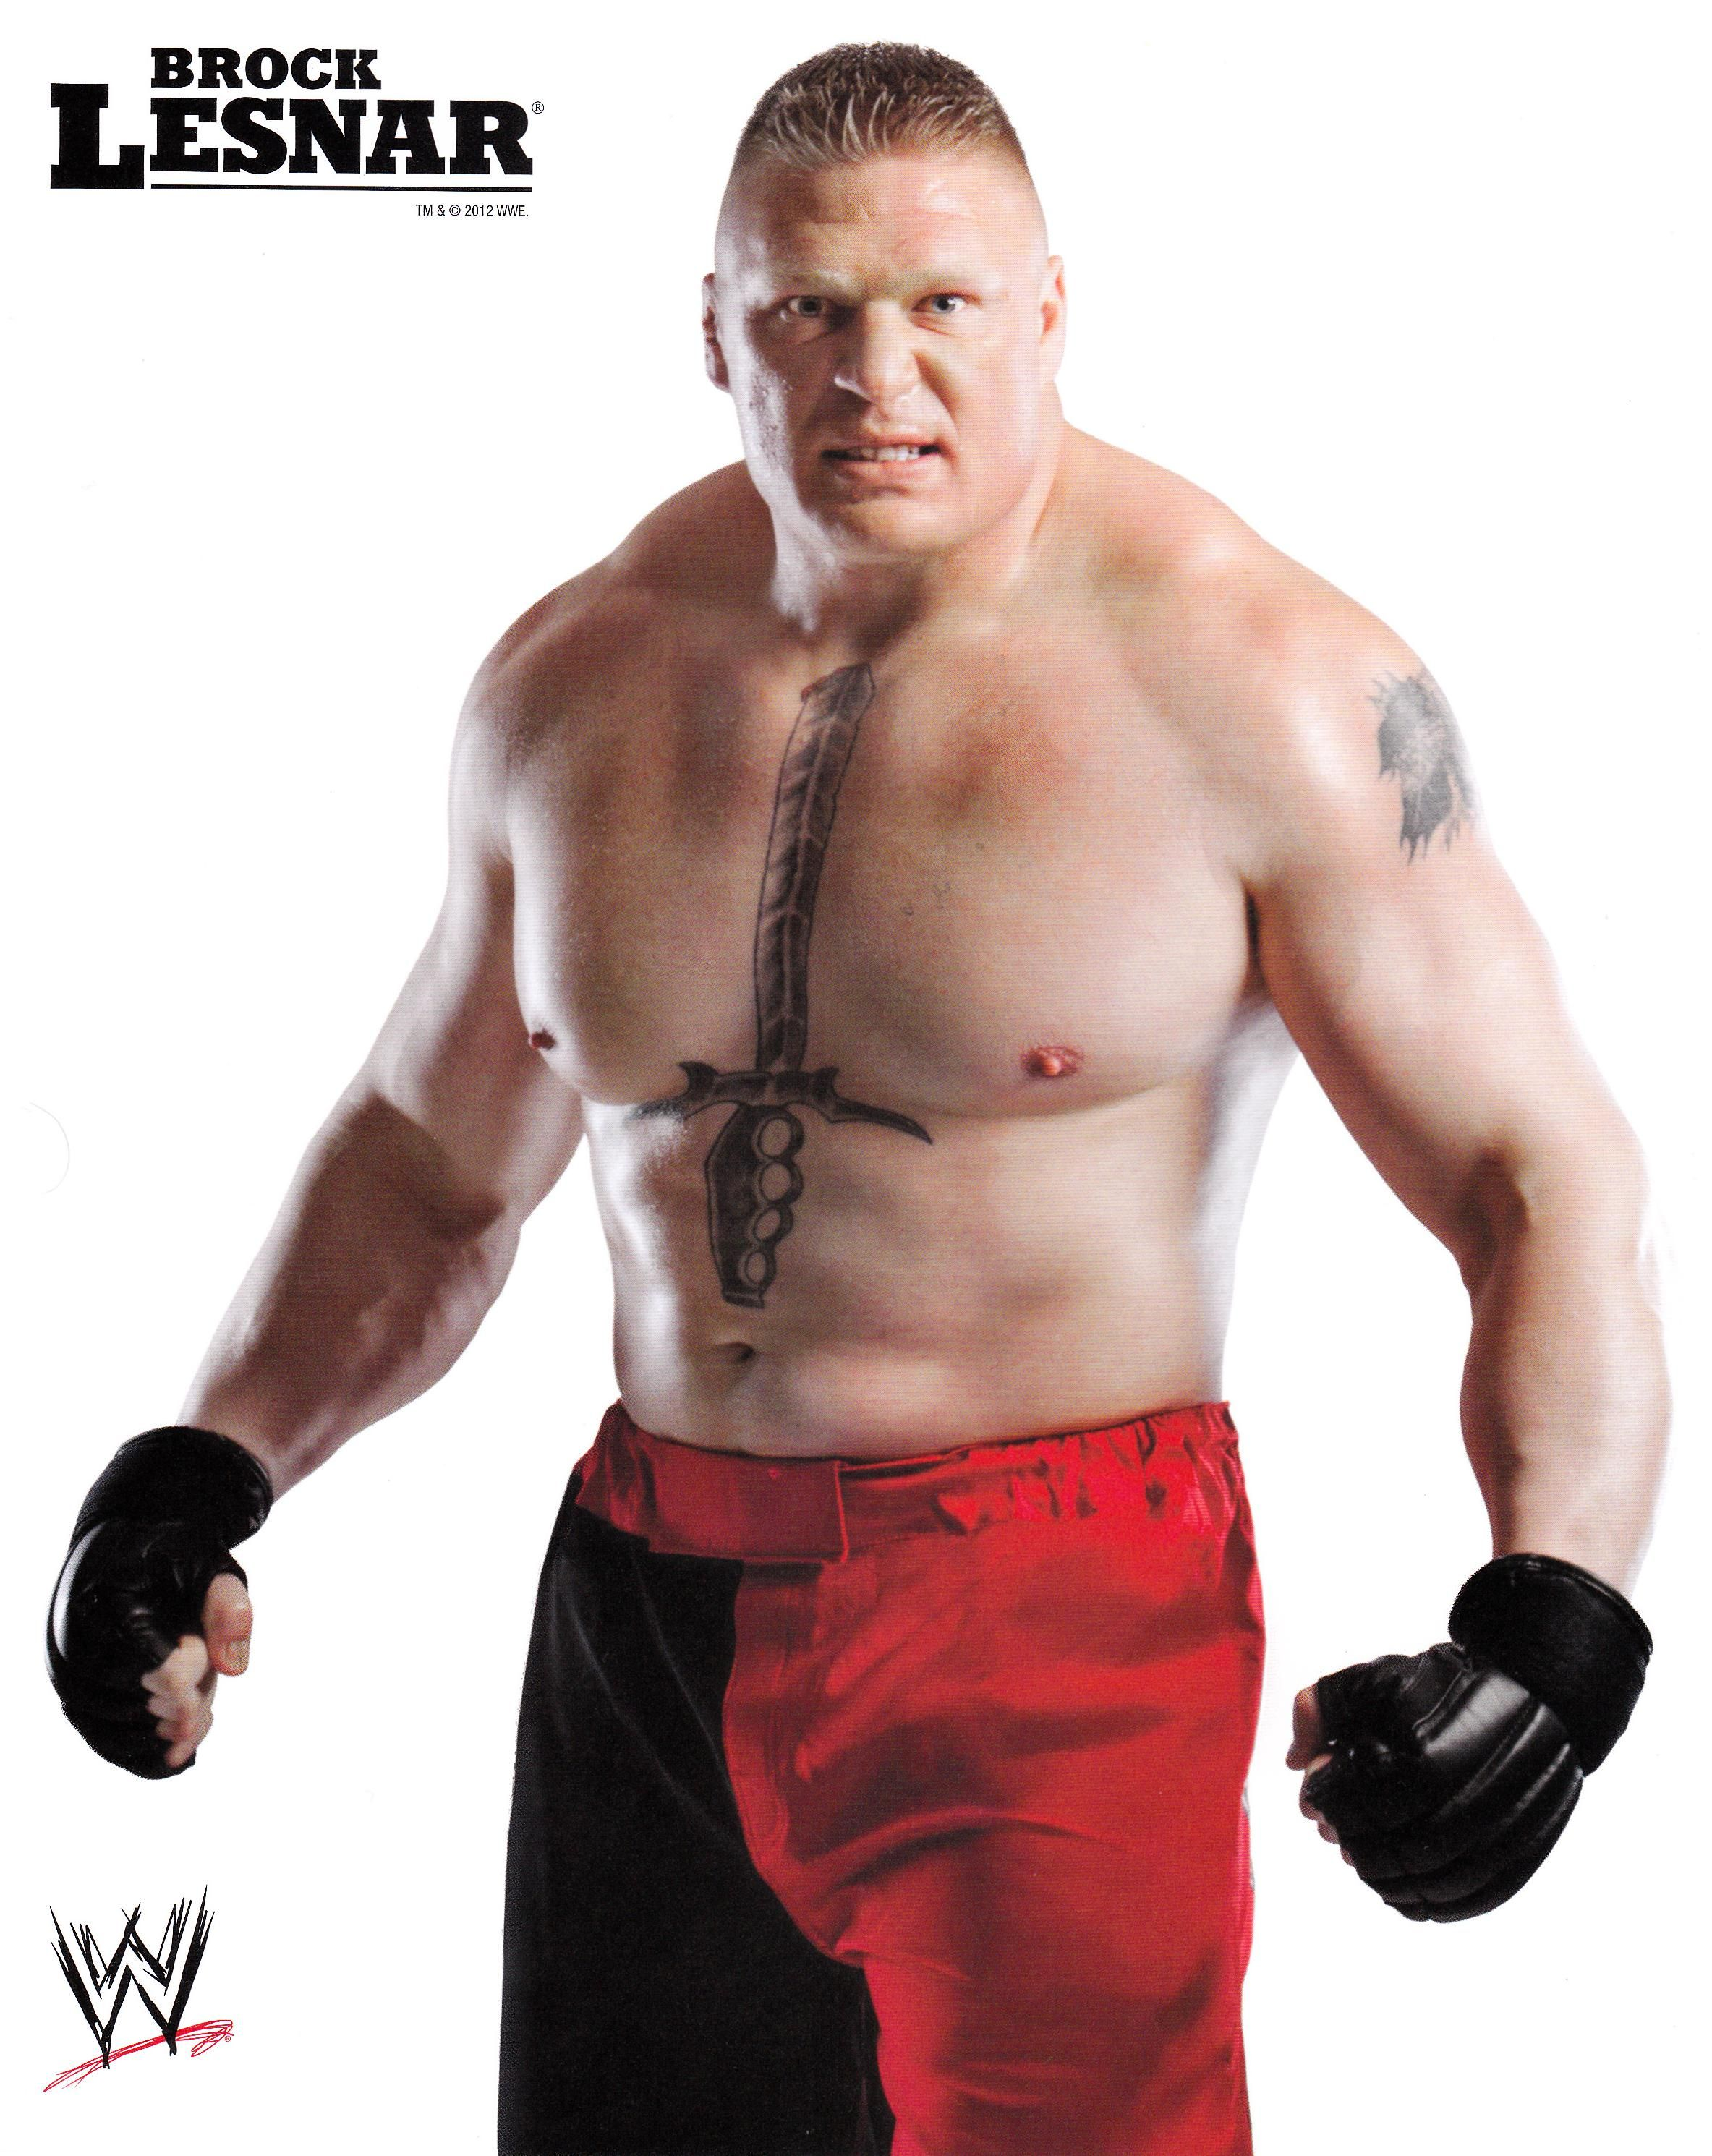 2014 Brock Lesnar Images Jpg 2367 2981 Brock Lesnar Wwe Brock